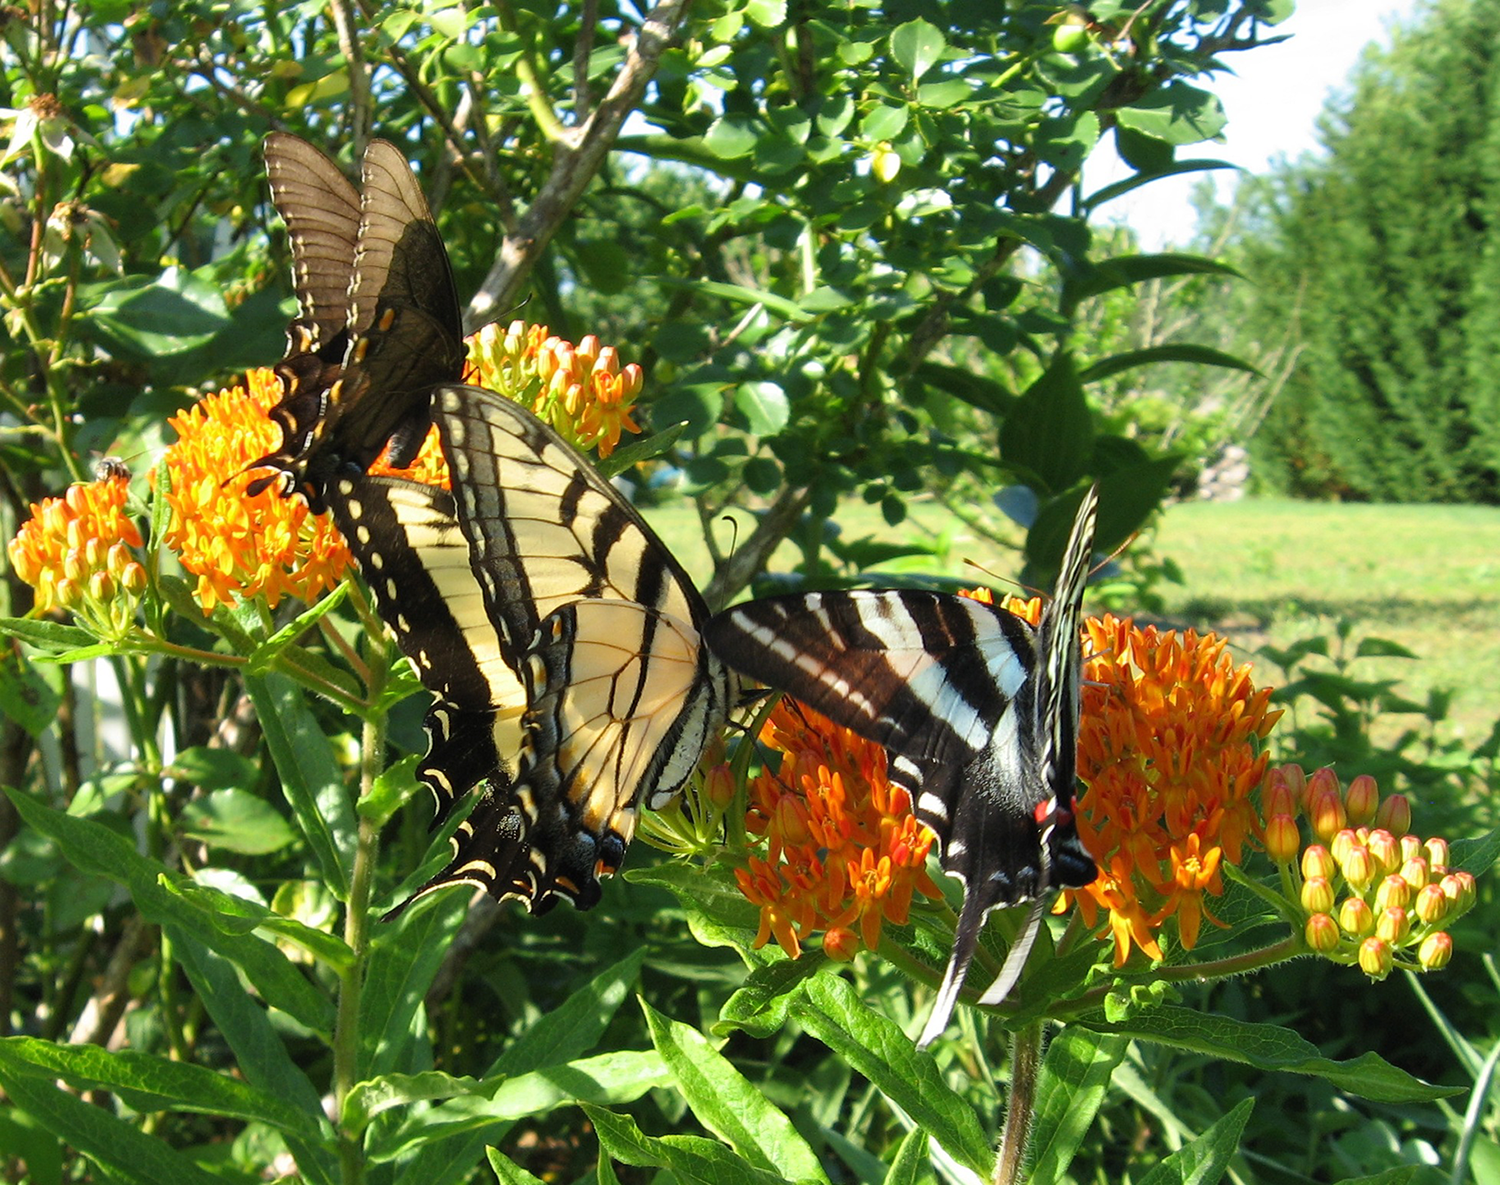 Butterfly Weed,  Asclepias tuberosa , is a magnet for butterflies. Asclepias  species   are  critically important larval hosts and nectar sources for the Monarch Butterfly ( Danaus plexippus ). Photo by Jan Newton. Cannot be reproduced without permission.